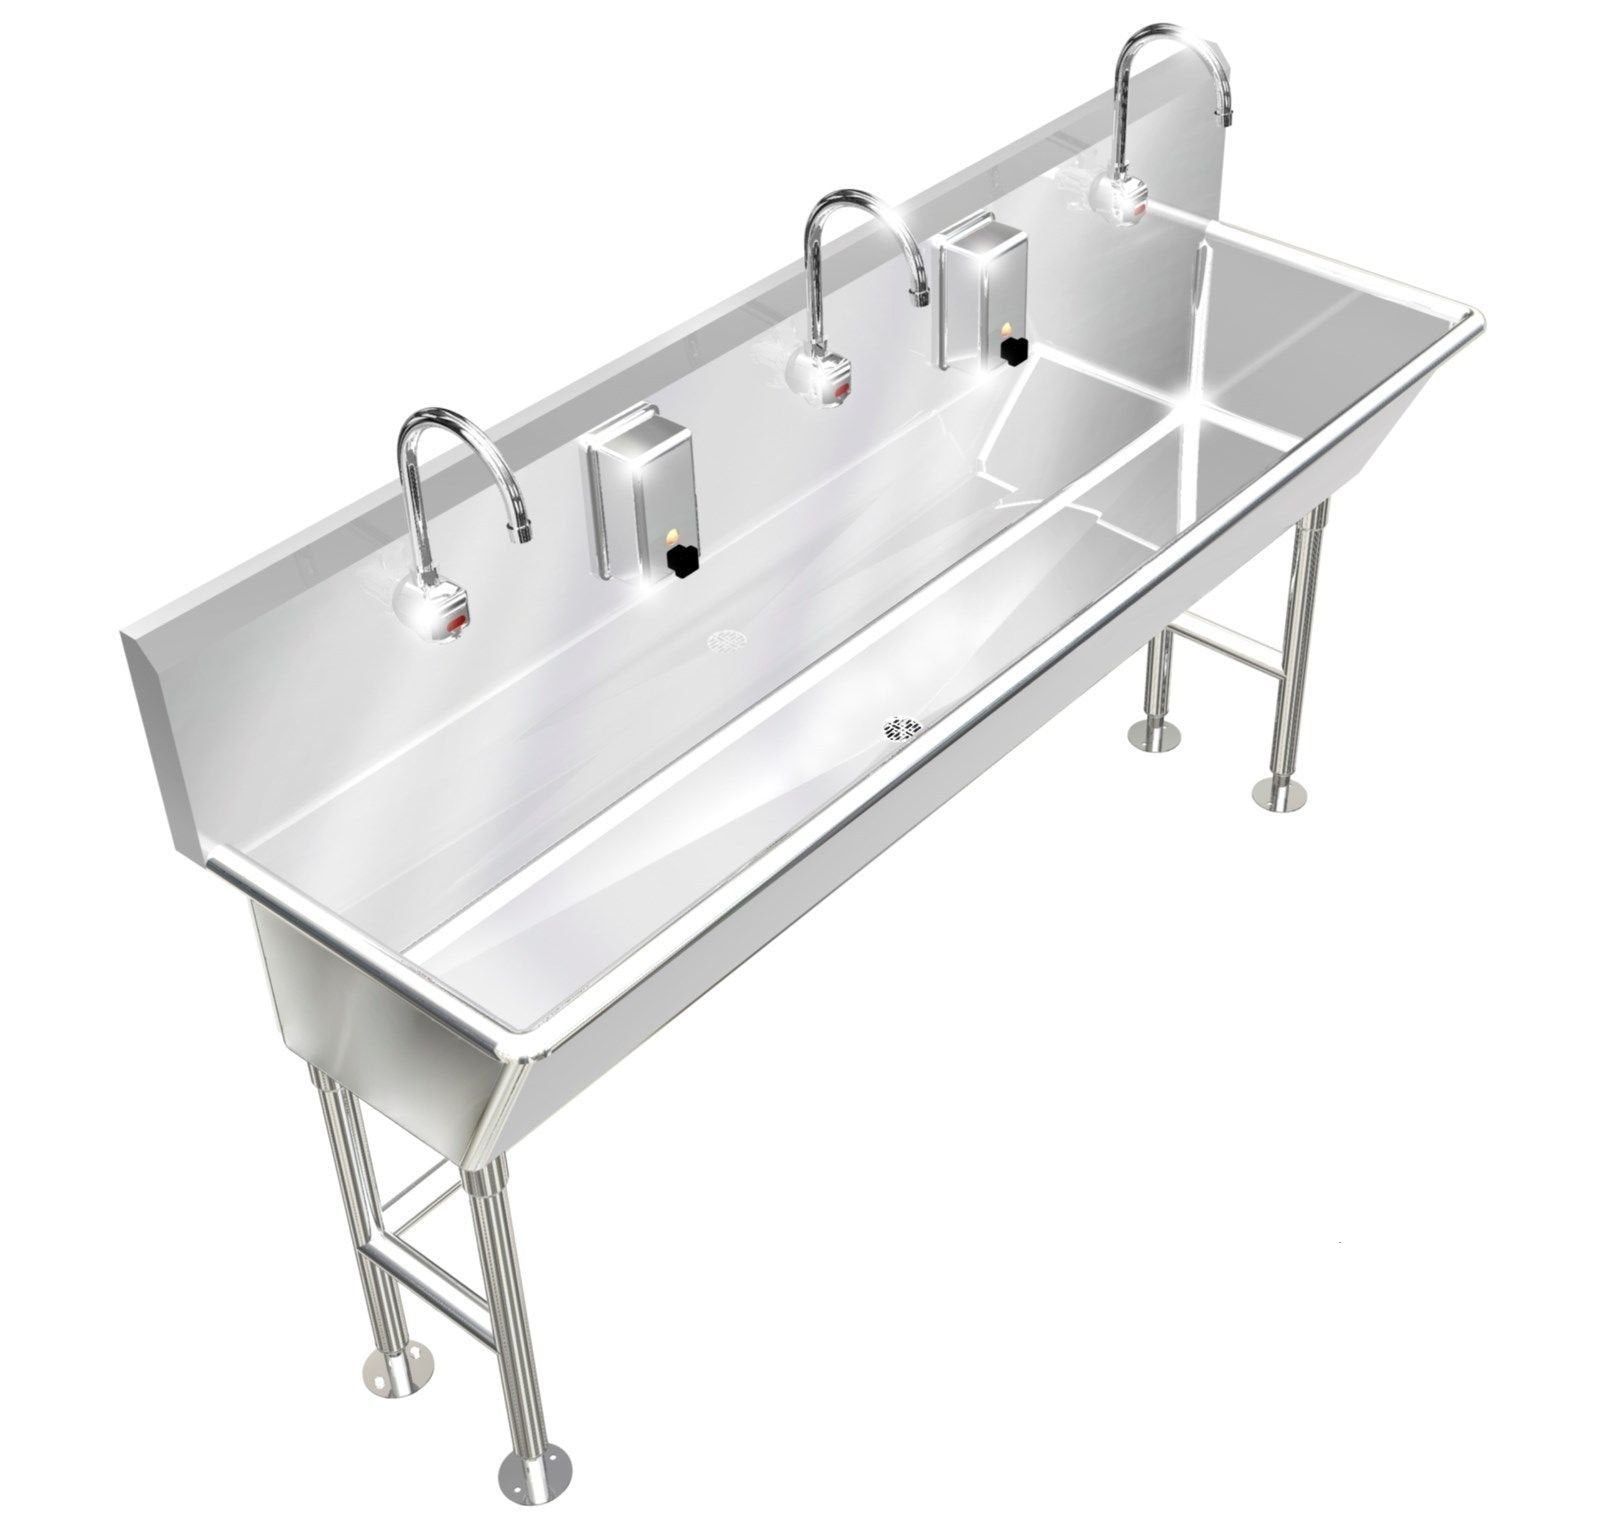 "HAND WASH SINK 3 STATION 72""L 12"" BOWL DEEP ELECTRONIC FAUCET FREE STANDING - Best Sheet Metal, Inc."